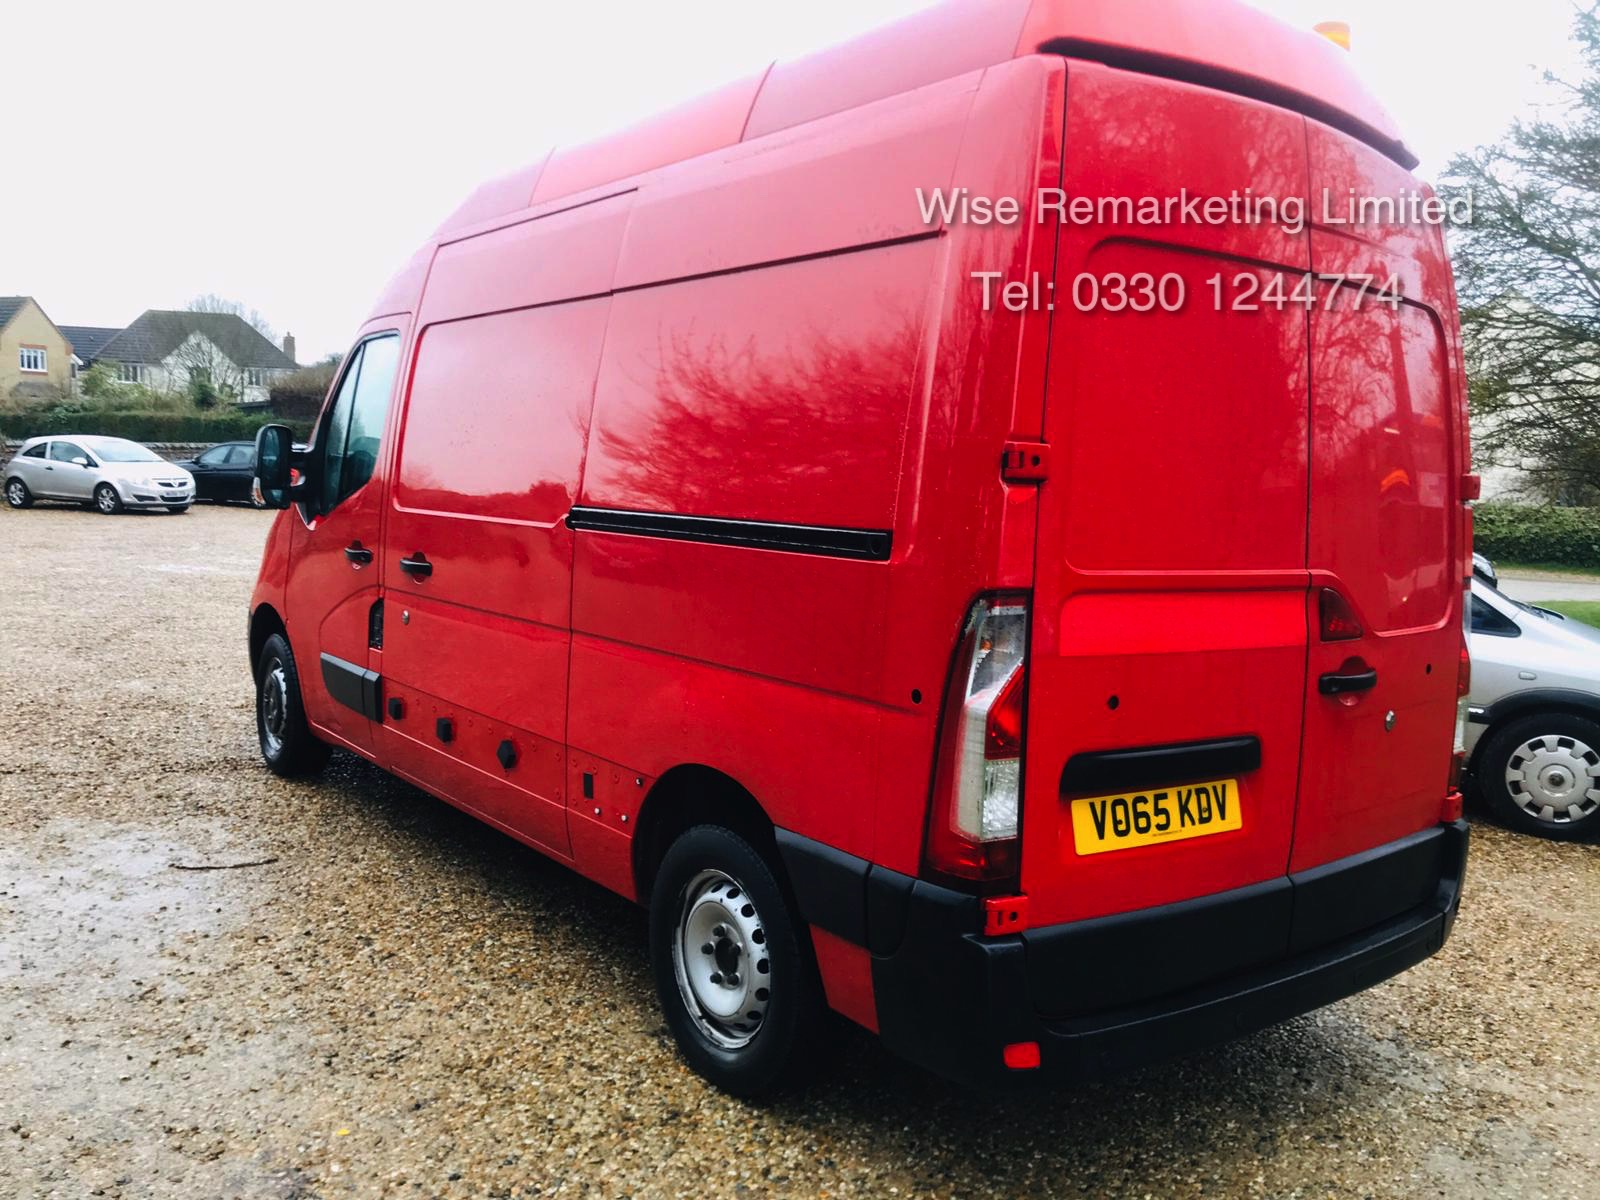 Vauxhall Movano 35 2.3 CDTi BiTurbo EcoFlex **HIGH ROOF** 2016 Model - AIr con - 1 Owner - RARE - Image 4 of 21